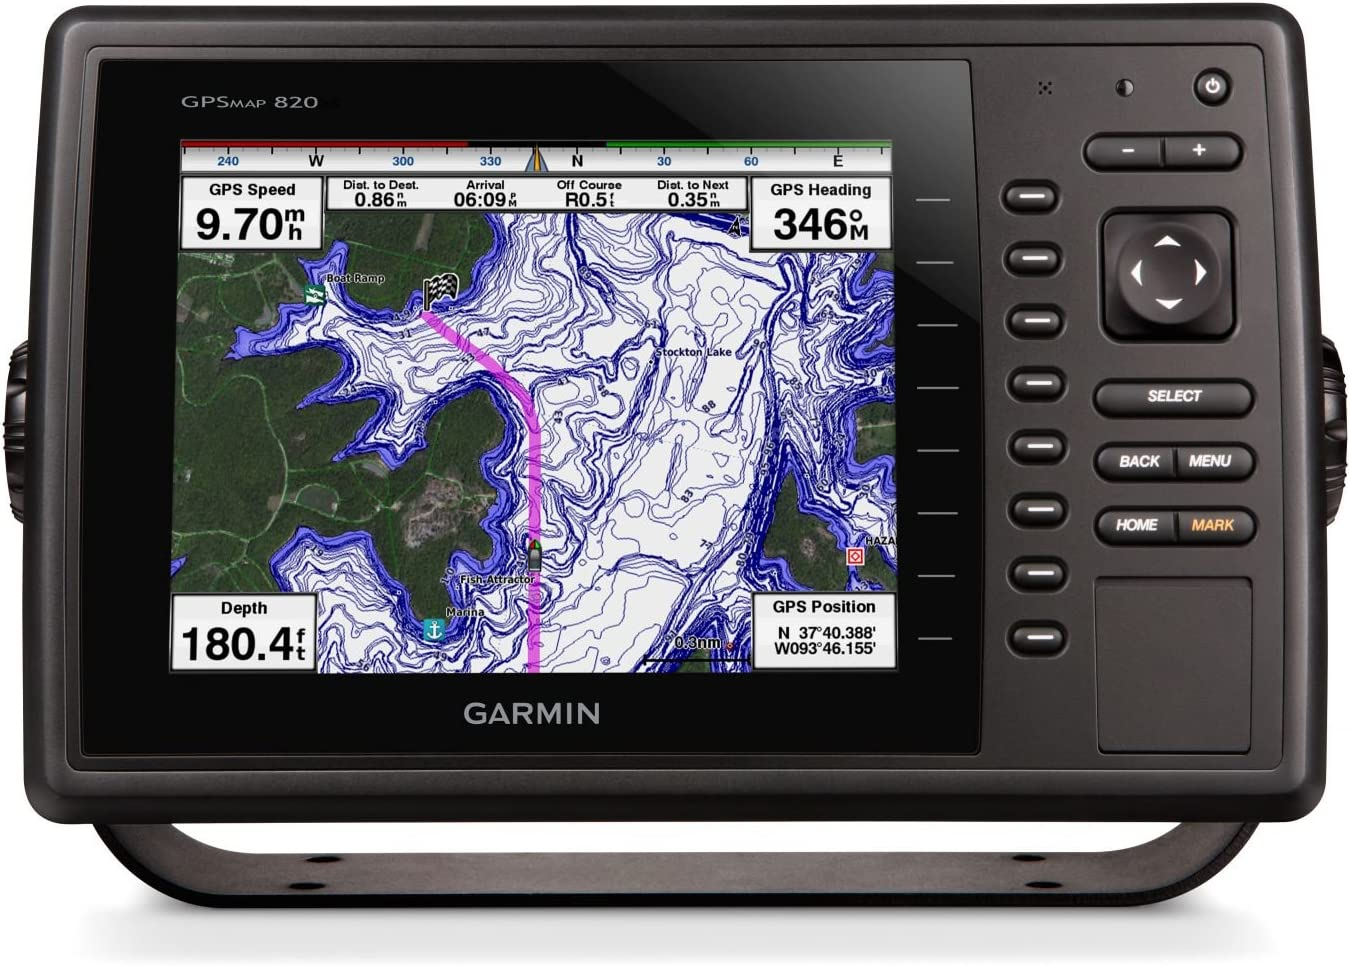 Gps Ploter Garmin Gpsmap 820: Amazon.es: Electrónica